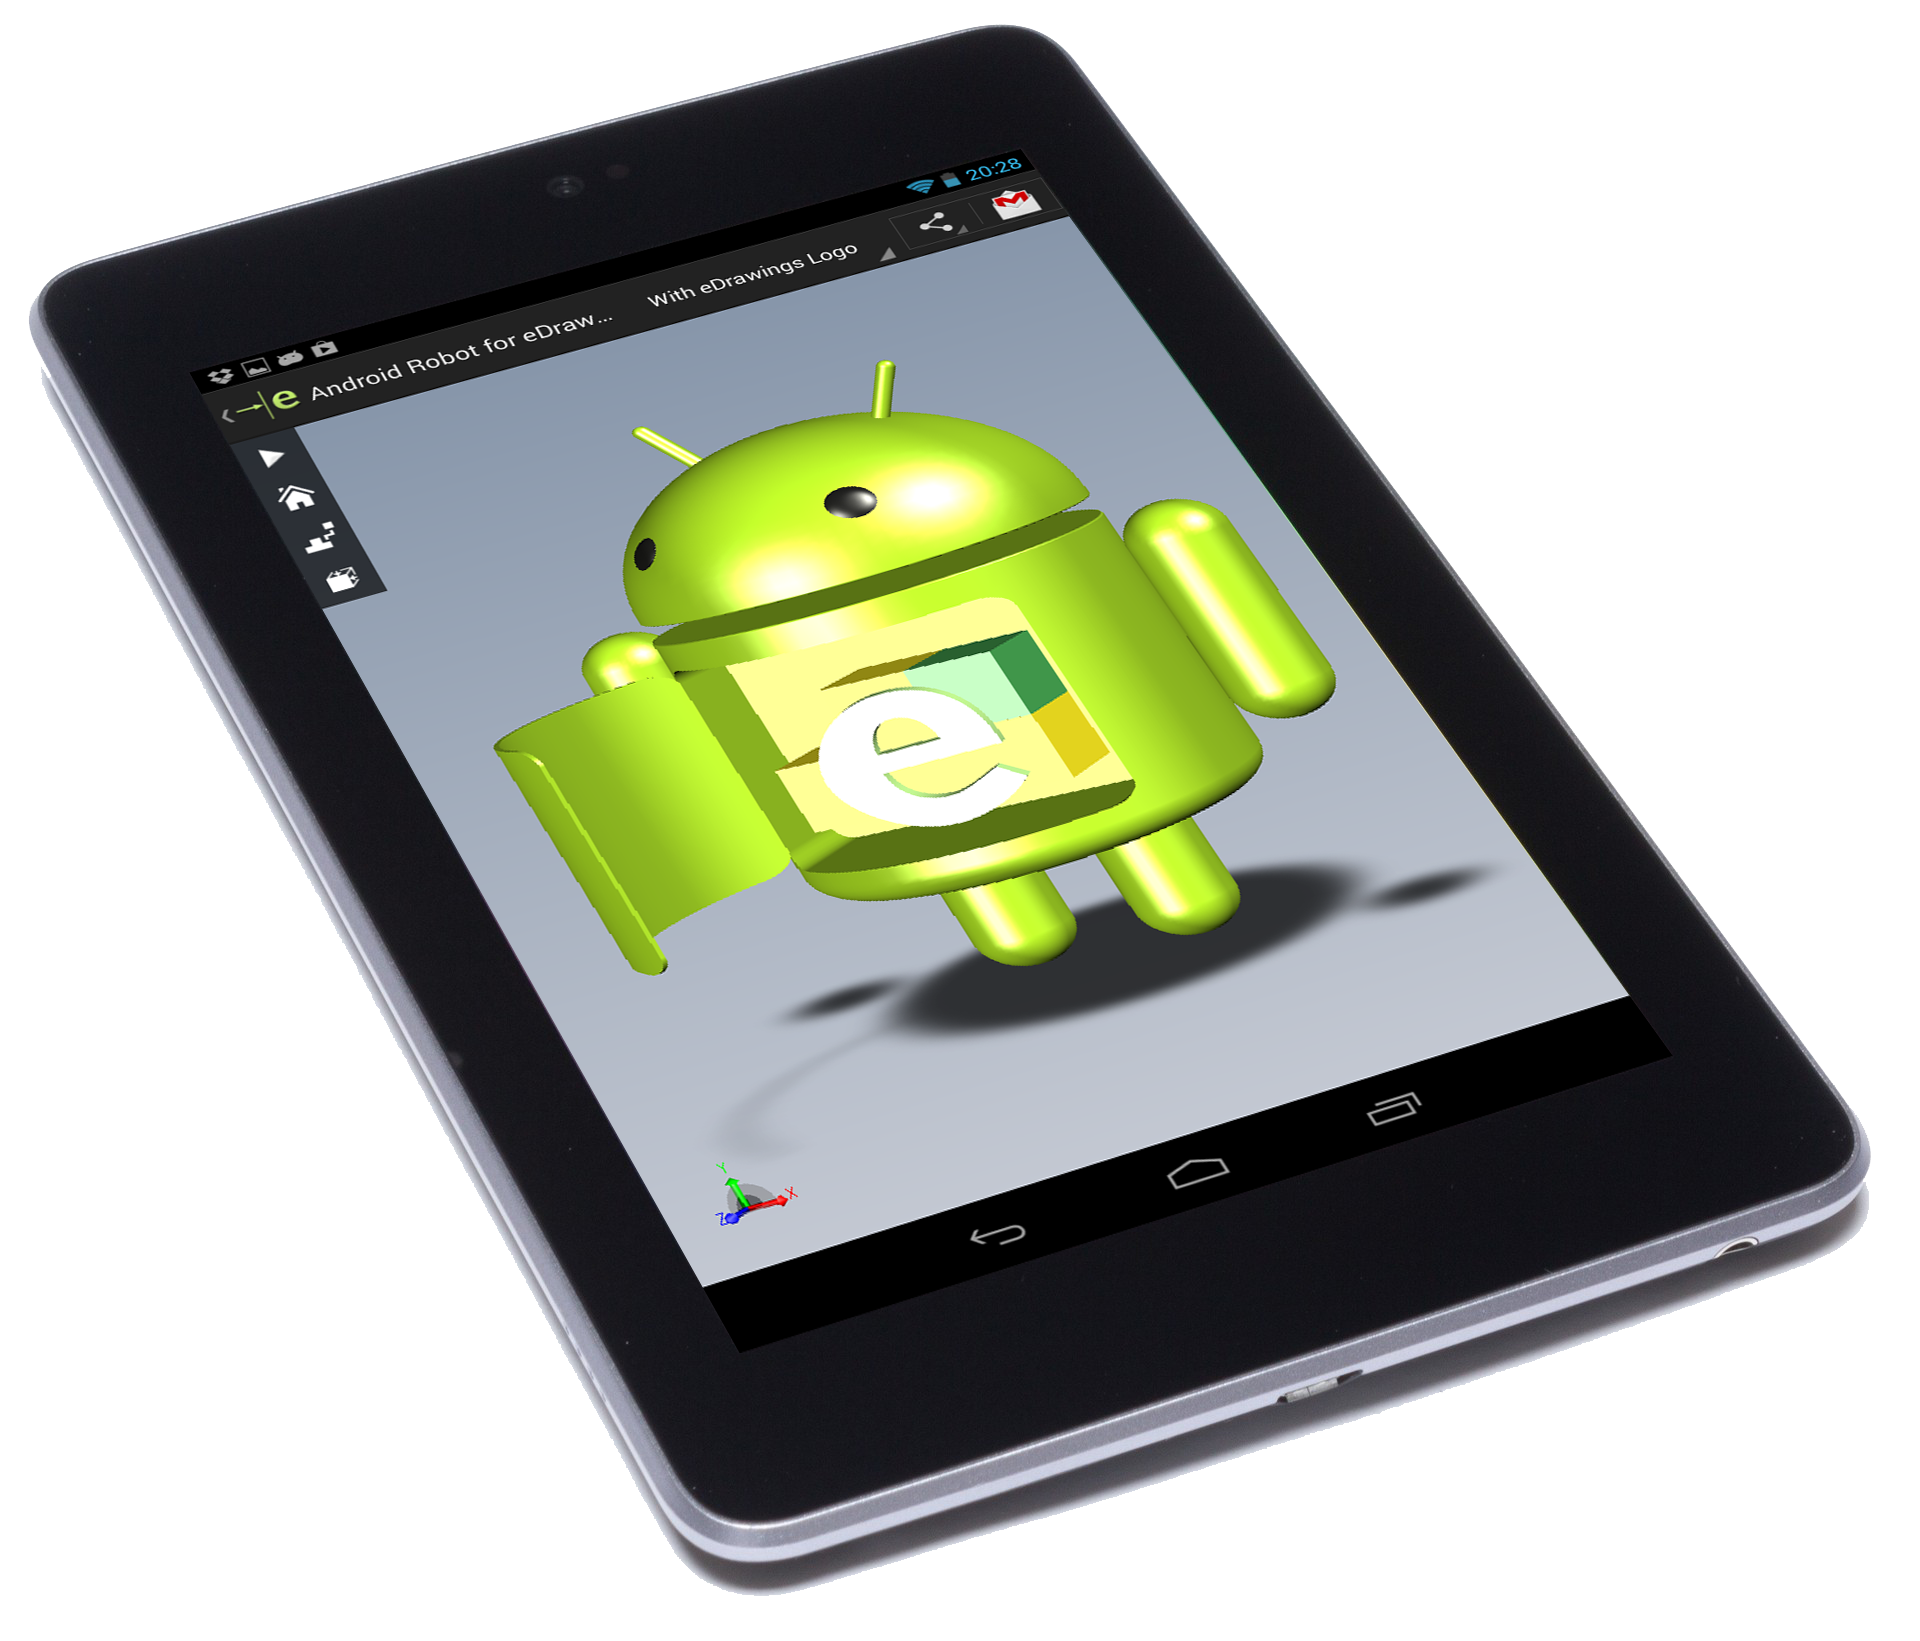 Introducing eDrawings for Android